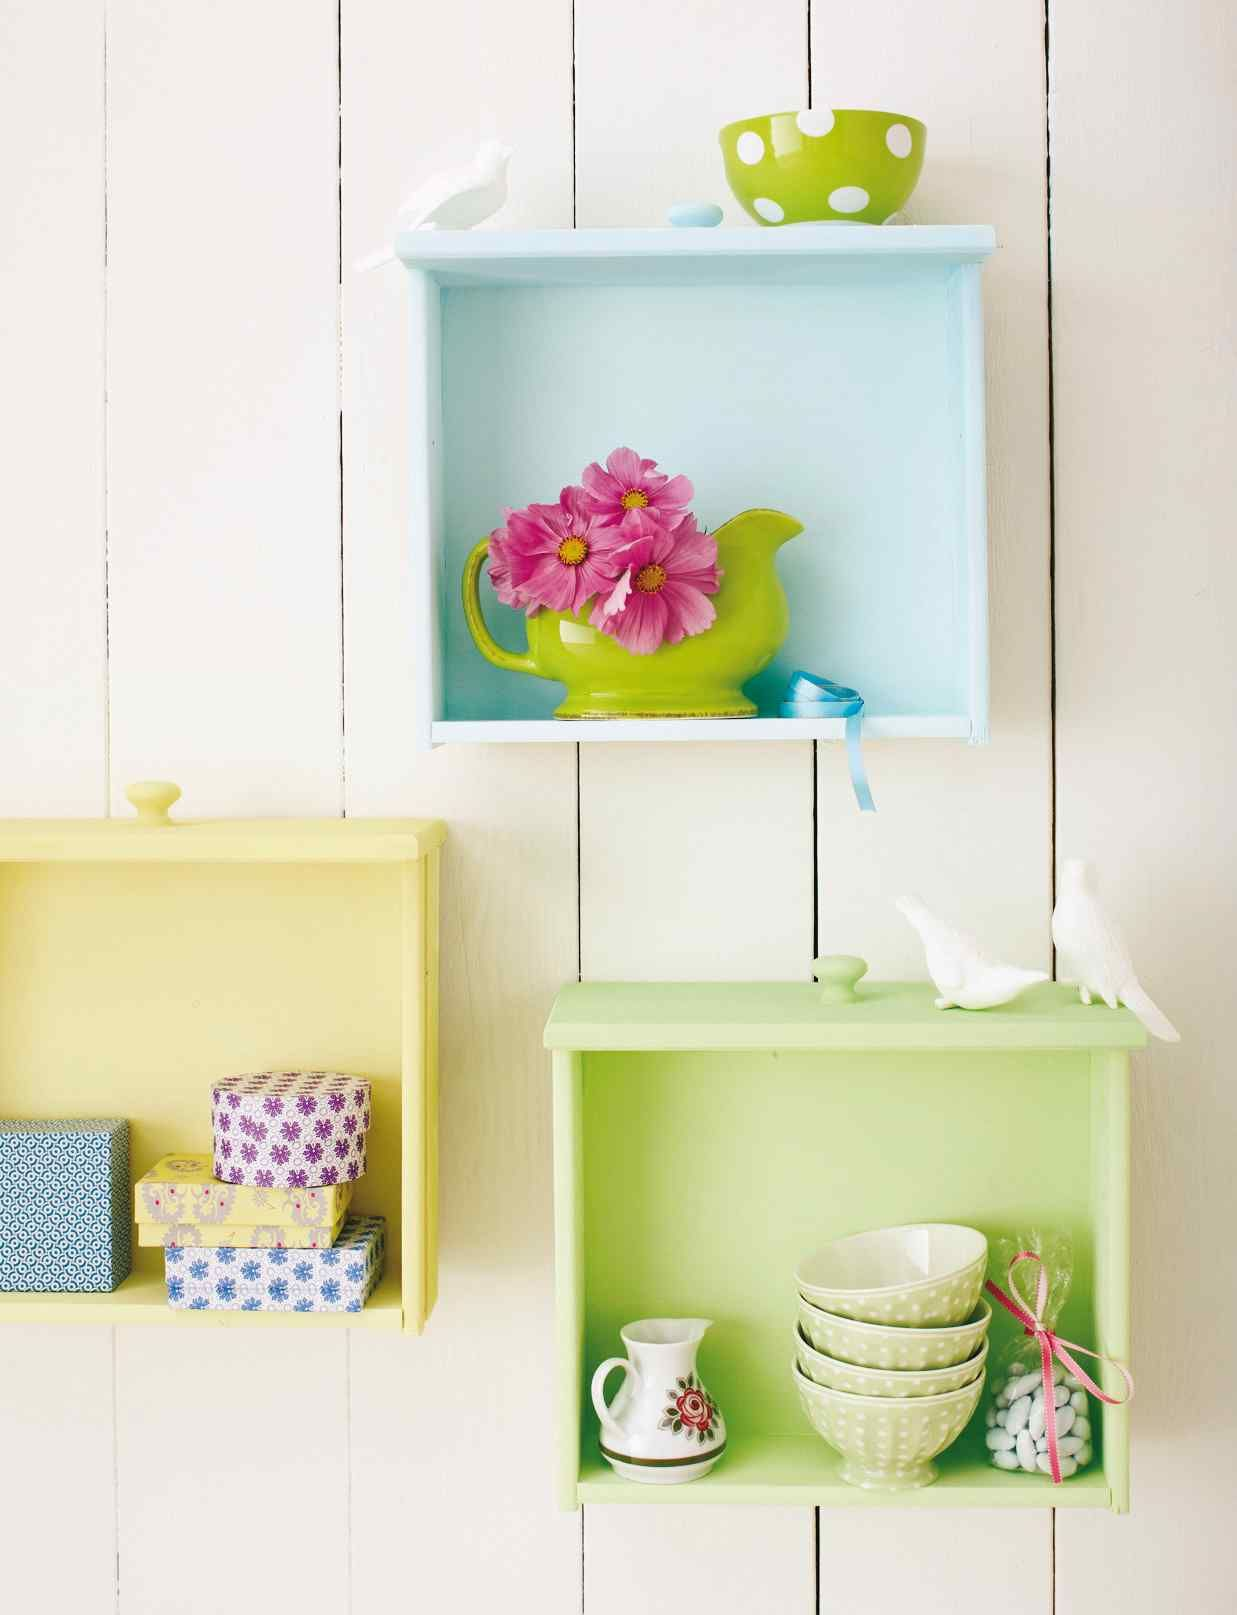 20 Diy Ideas How to Reuse Old Drawers | Drawers, Shelves and ...